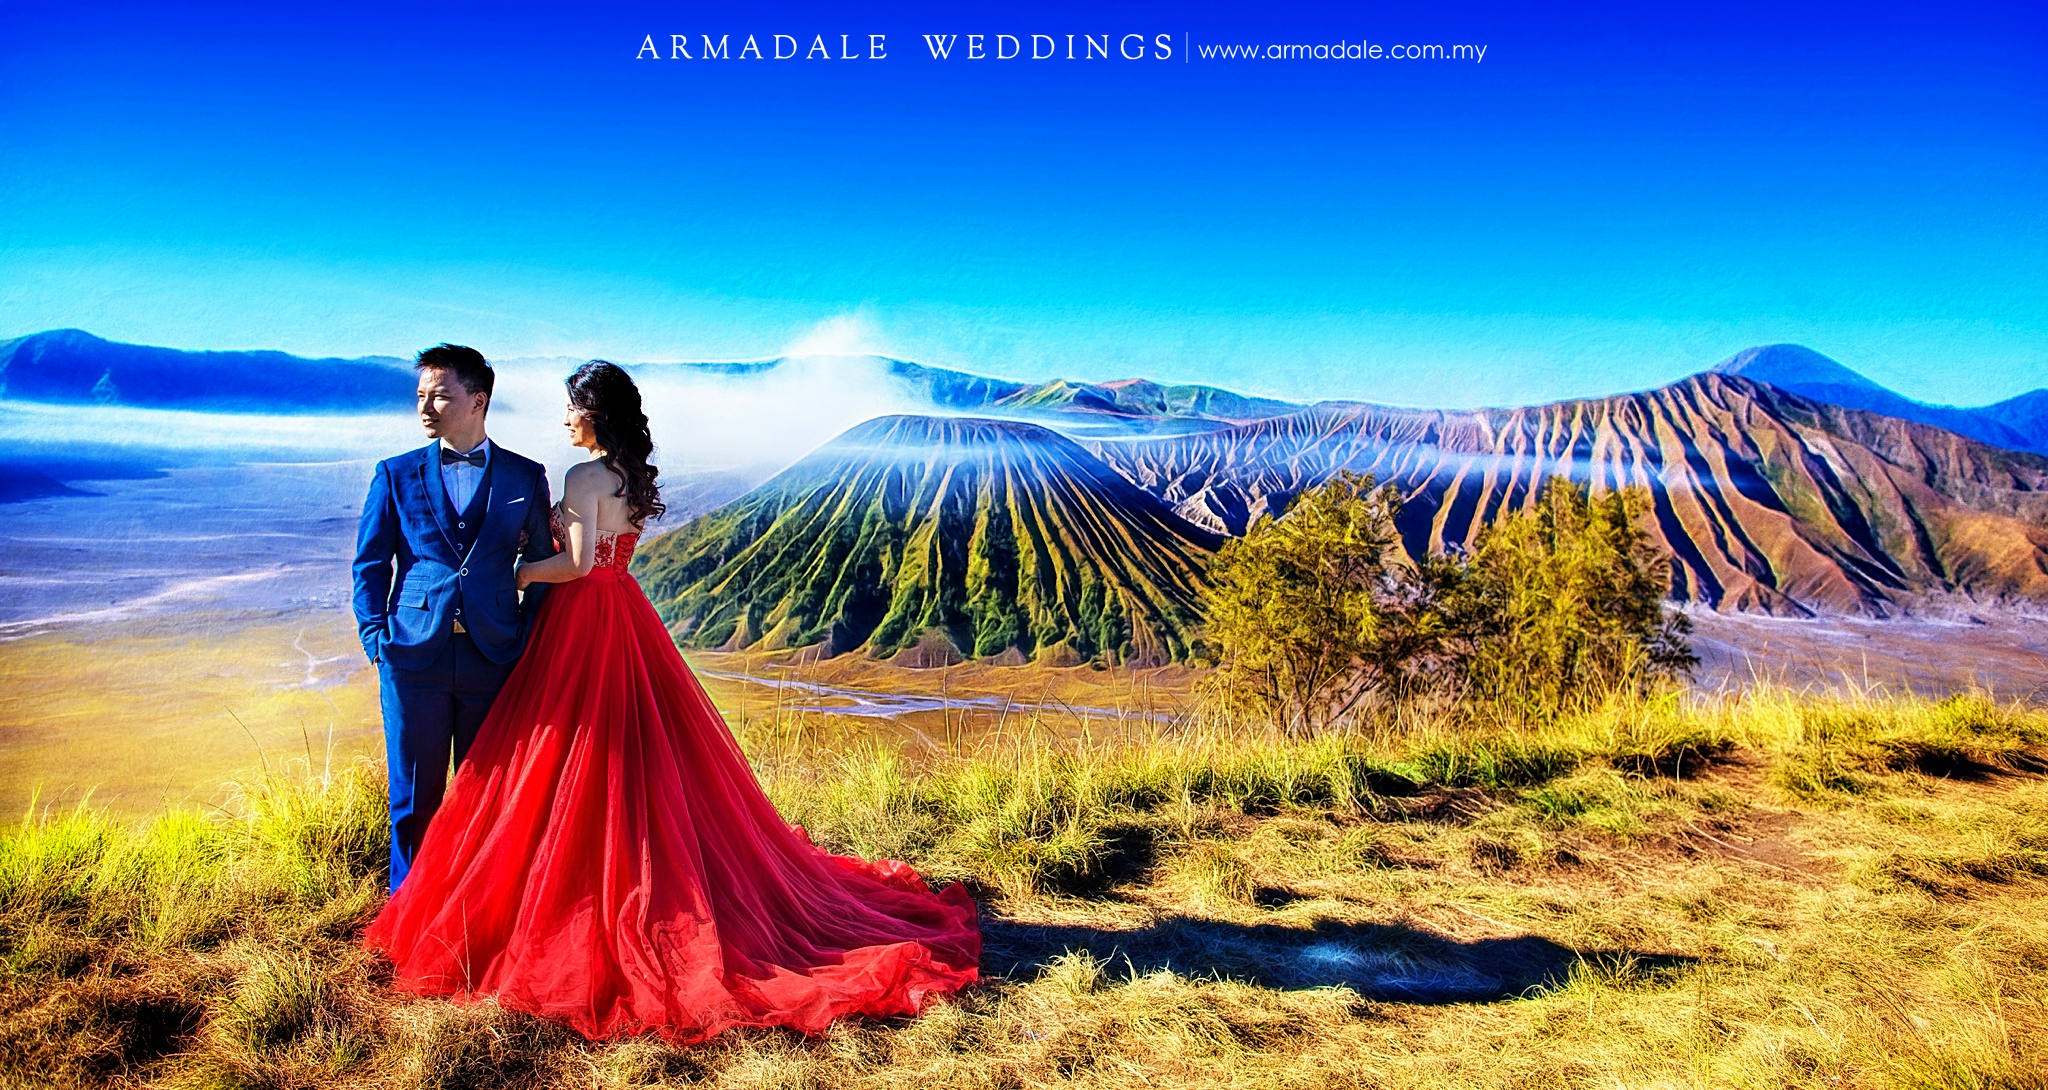 Gorgeous RED evening gowns in Armadale Weddings | Armadale Weddings ...